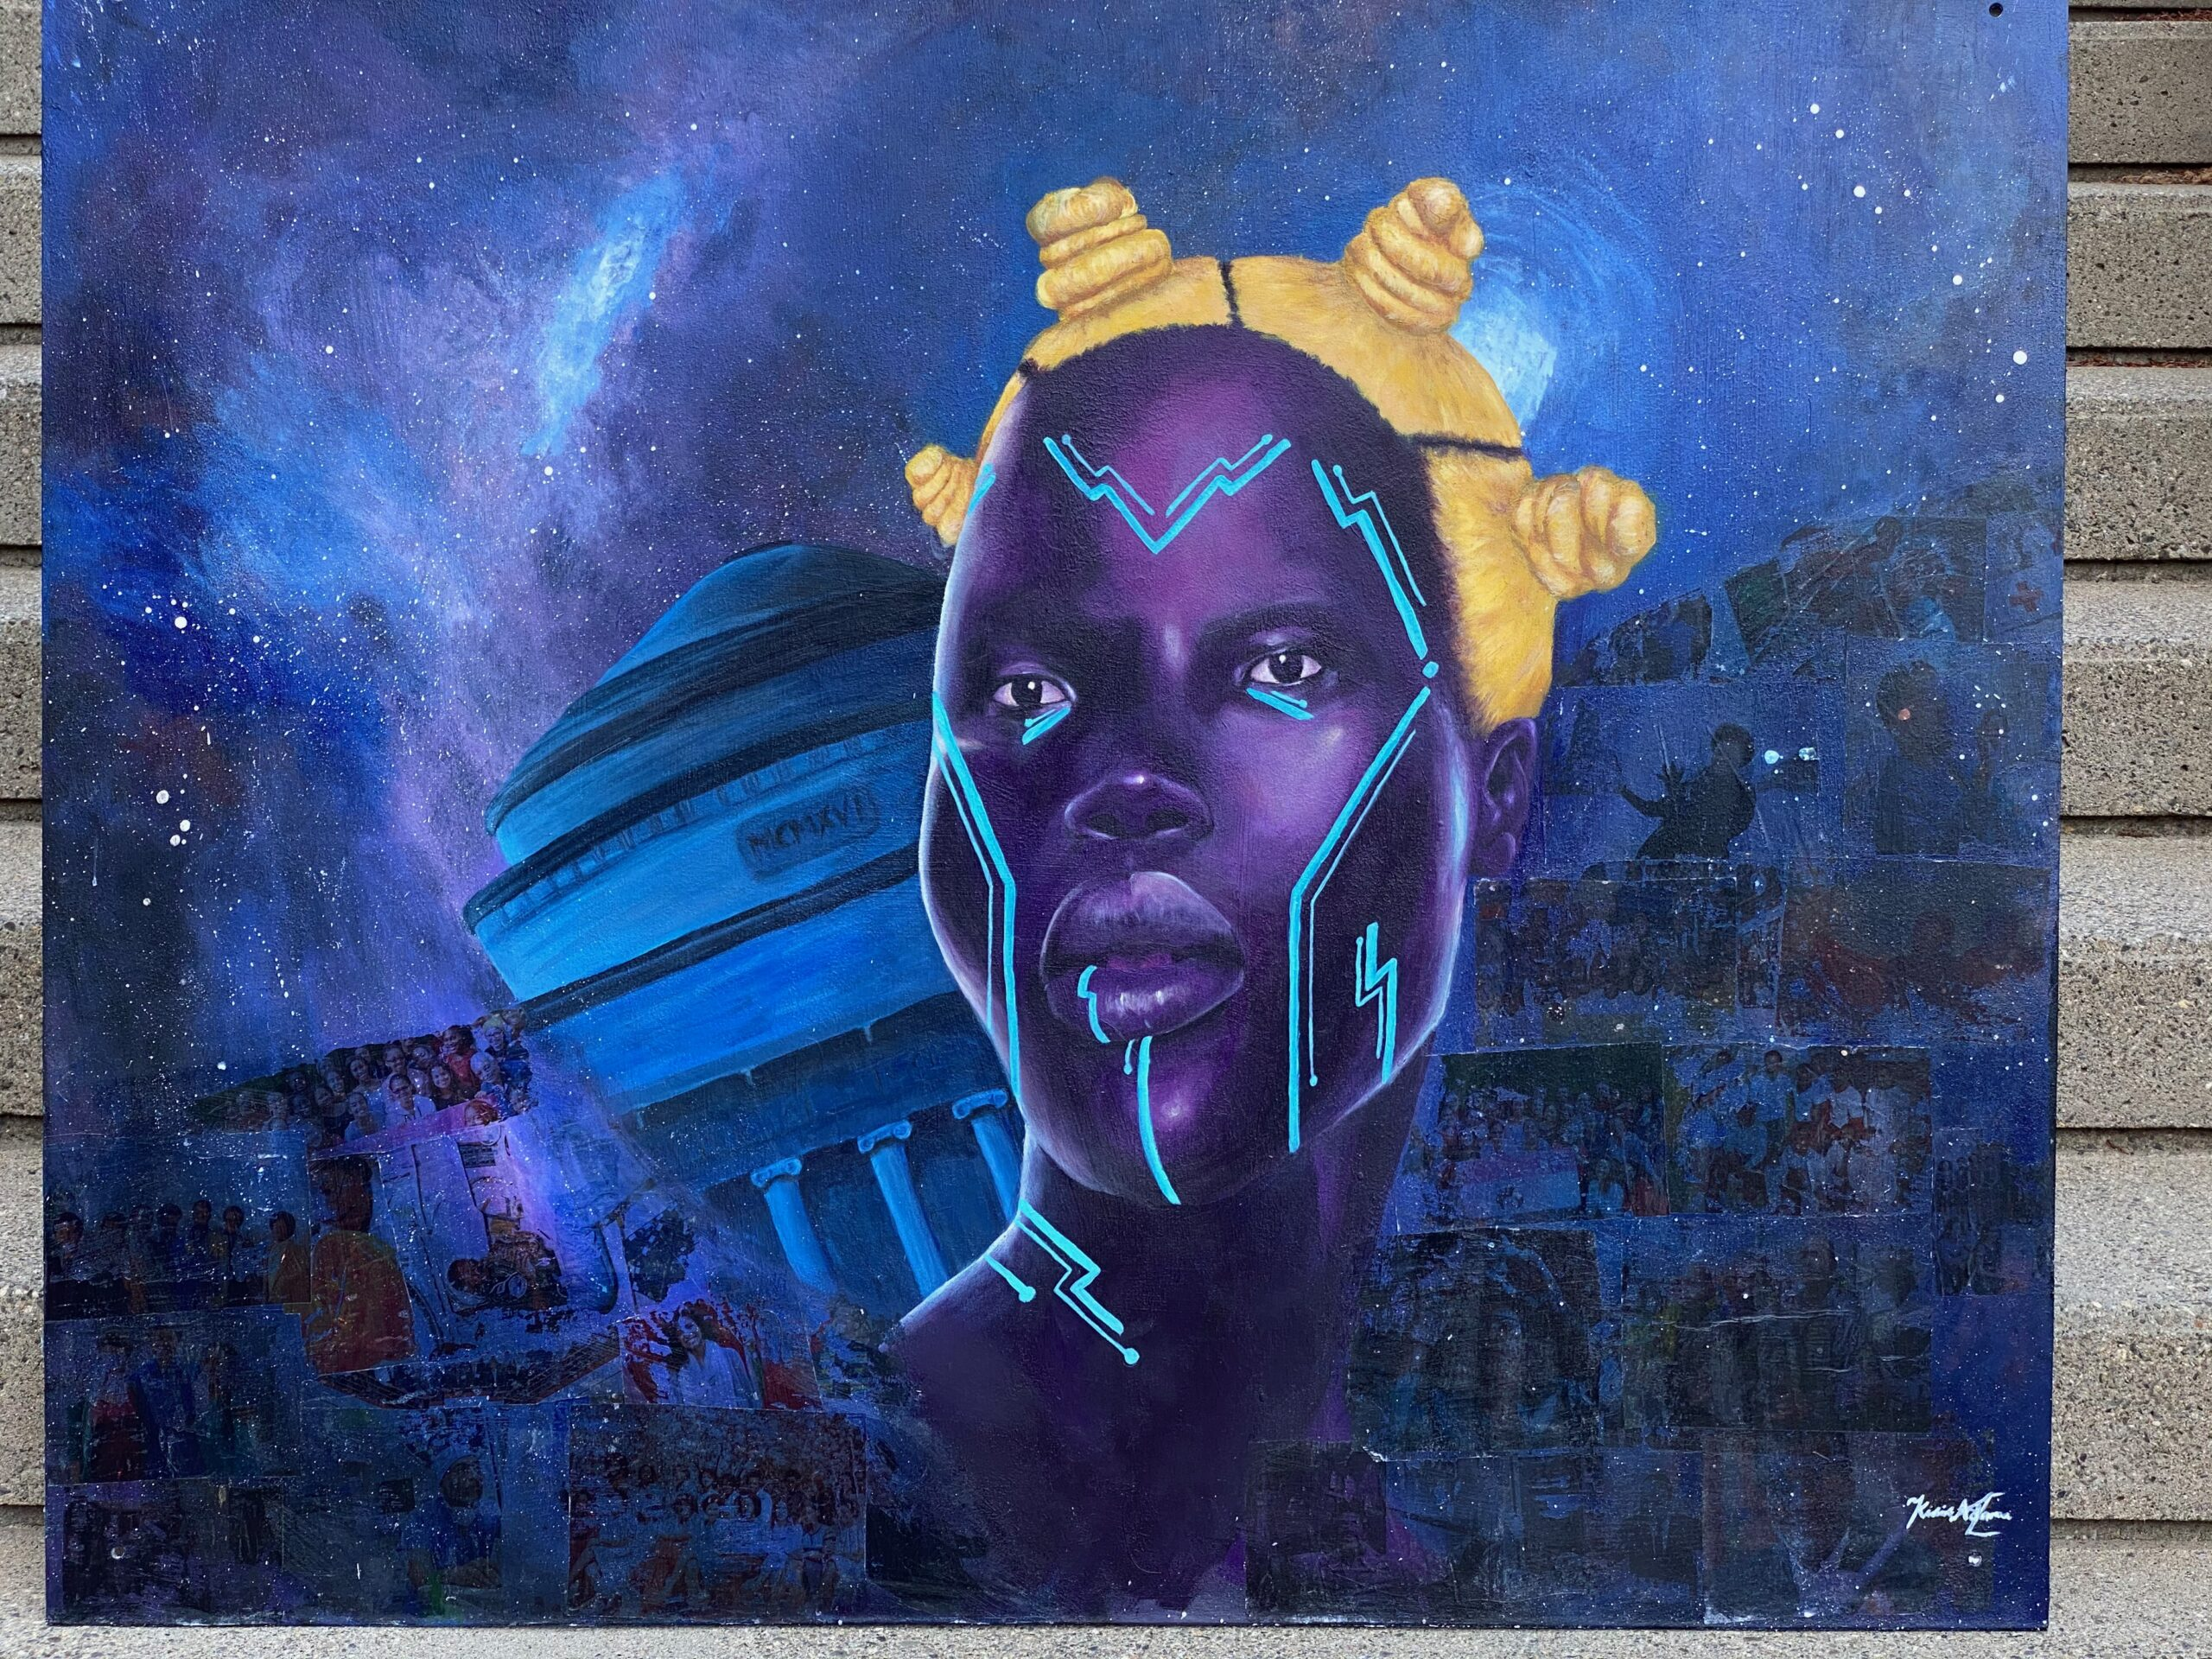 a picture of a mural of a Black woman